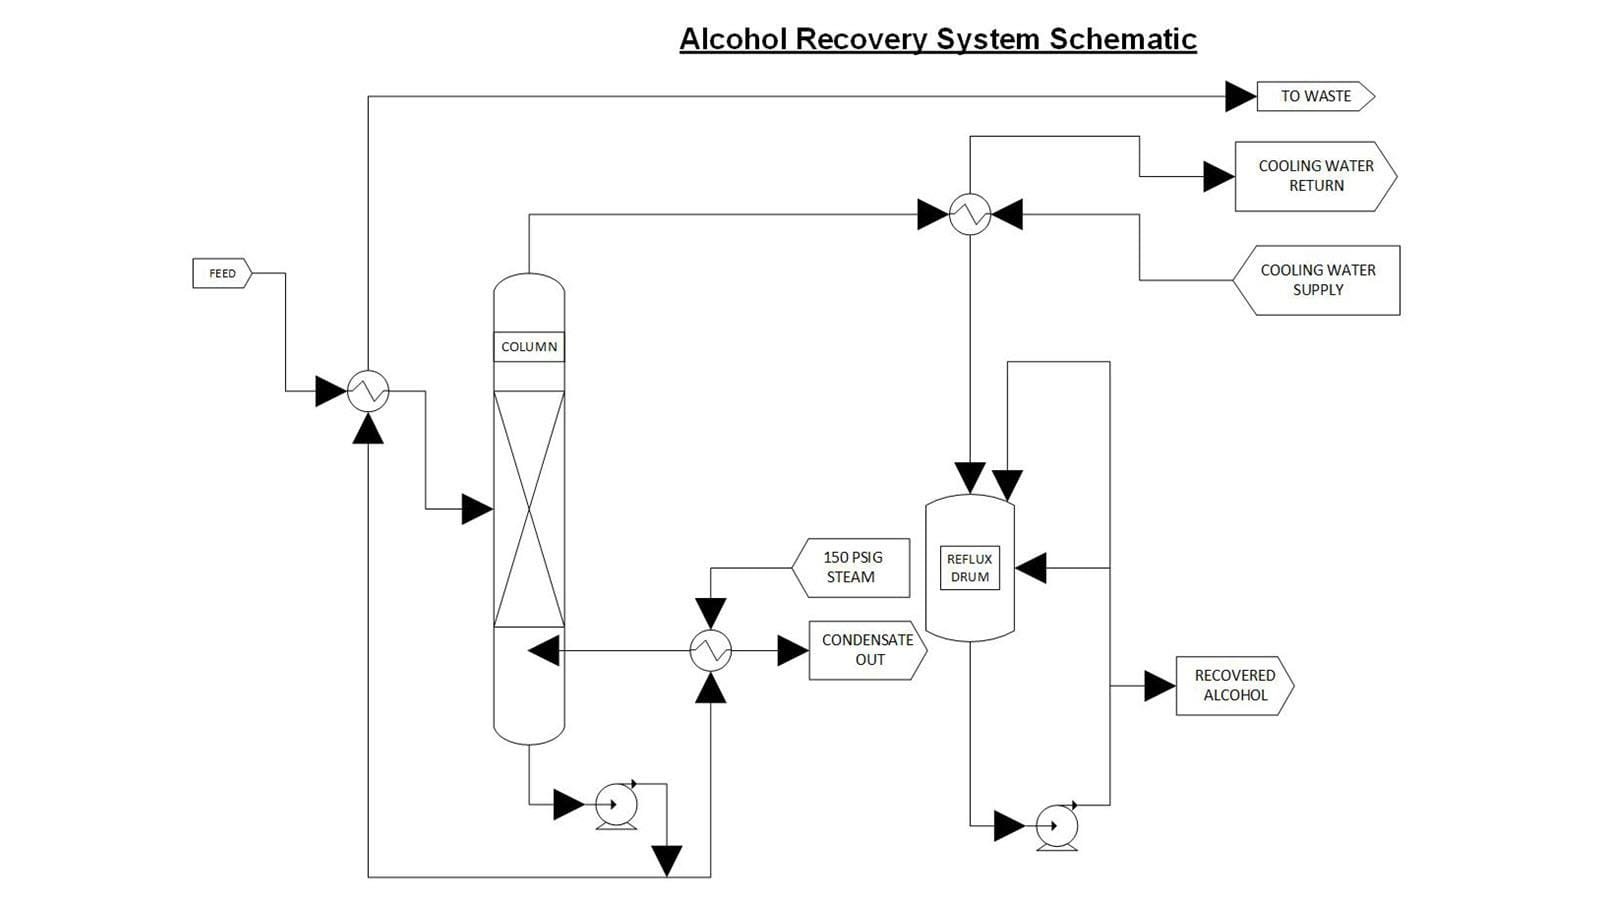 Schematic drawing of an alcohol recovery system in maufacturing